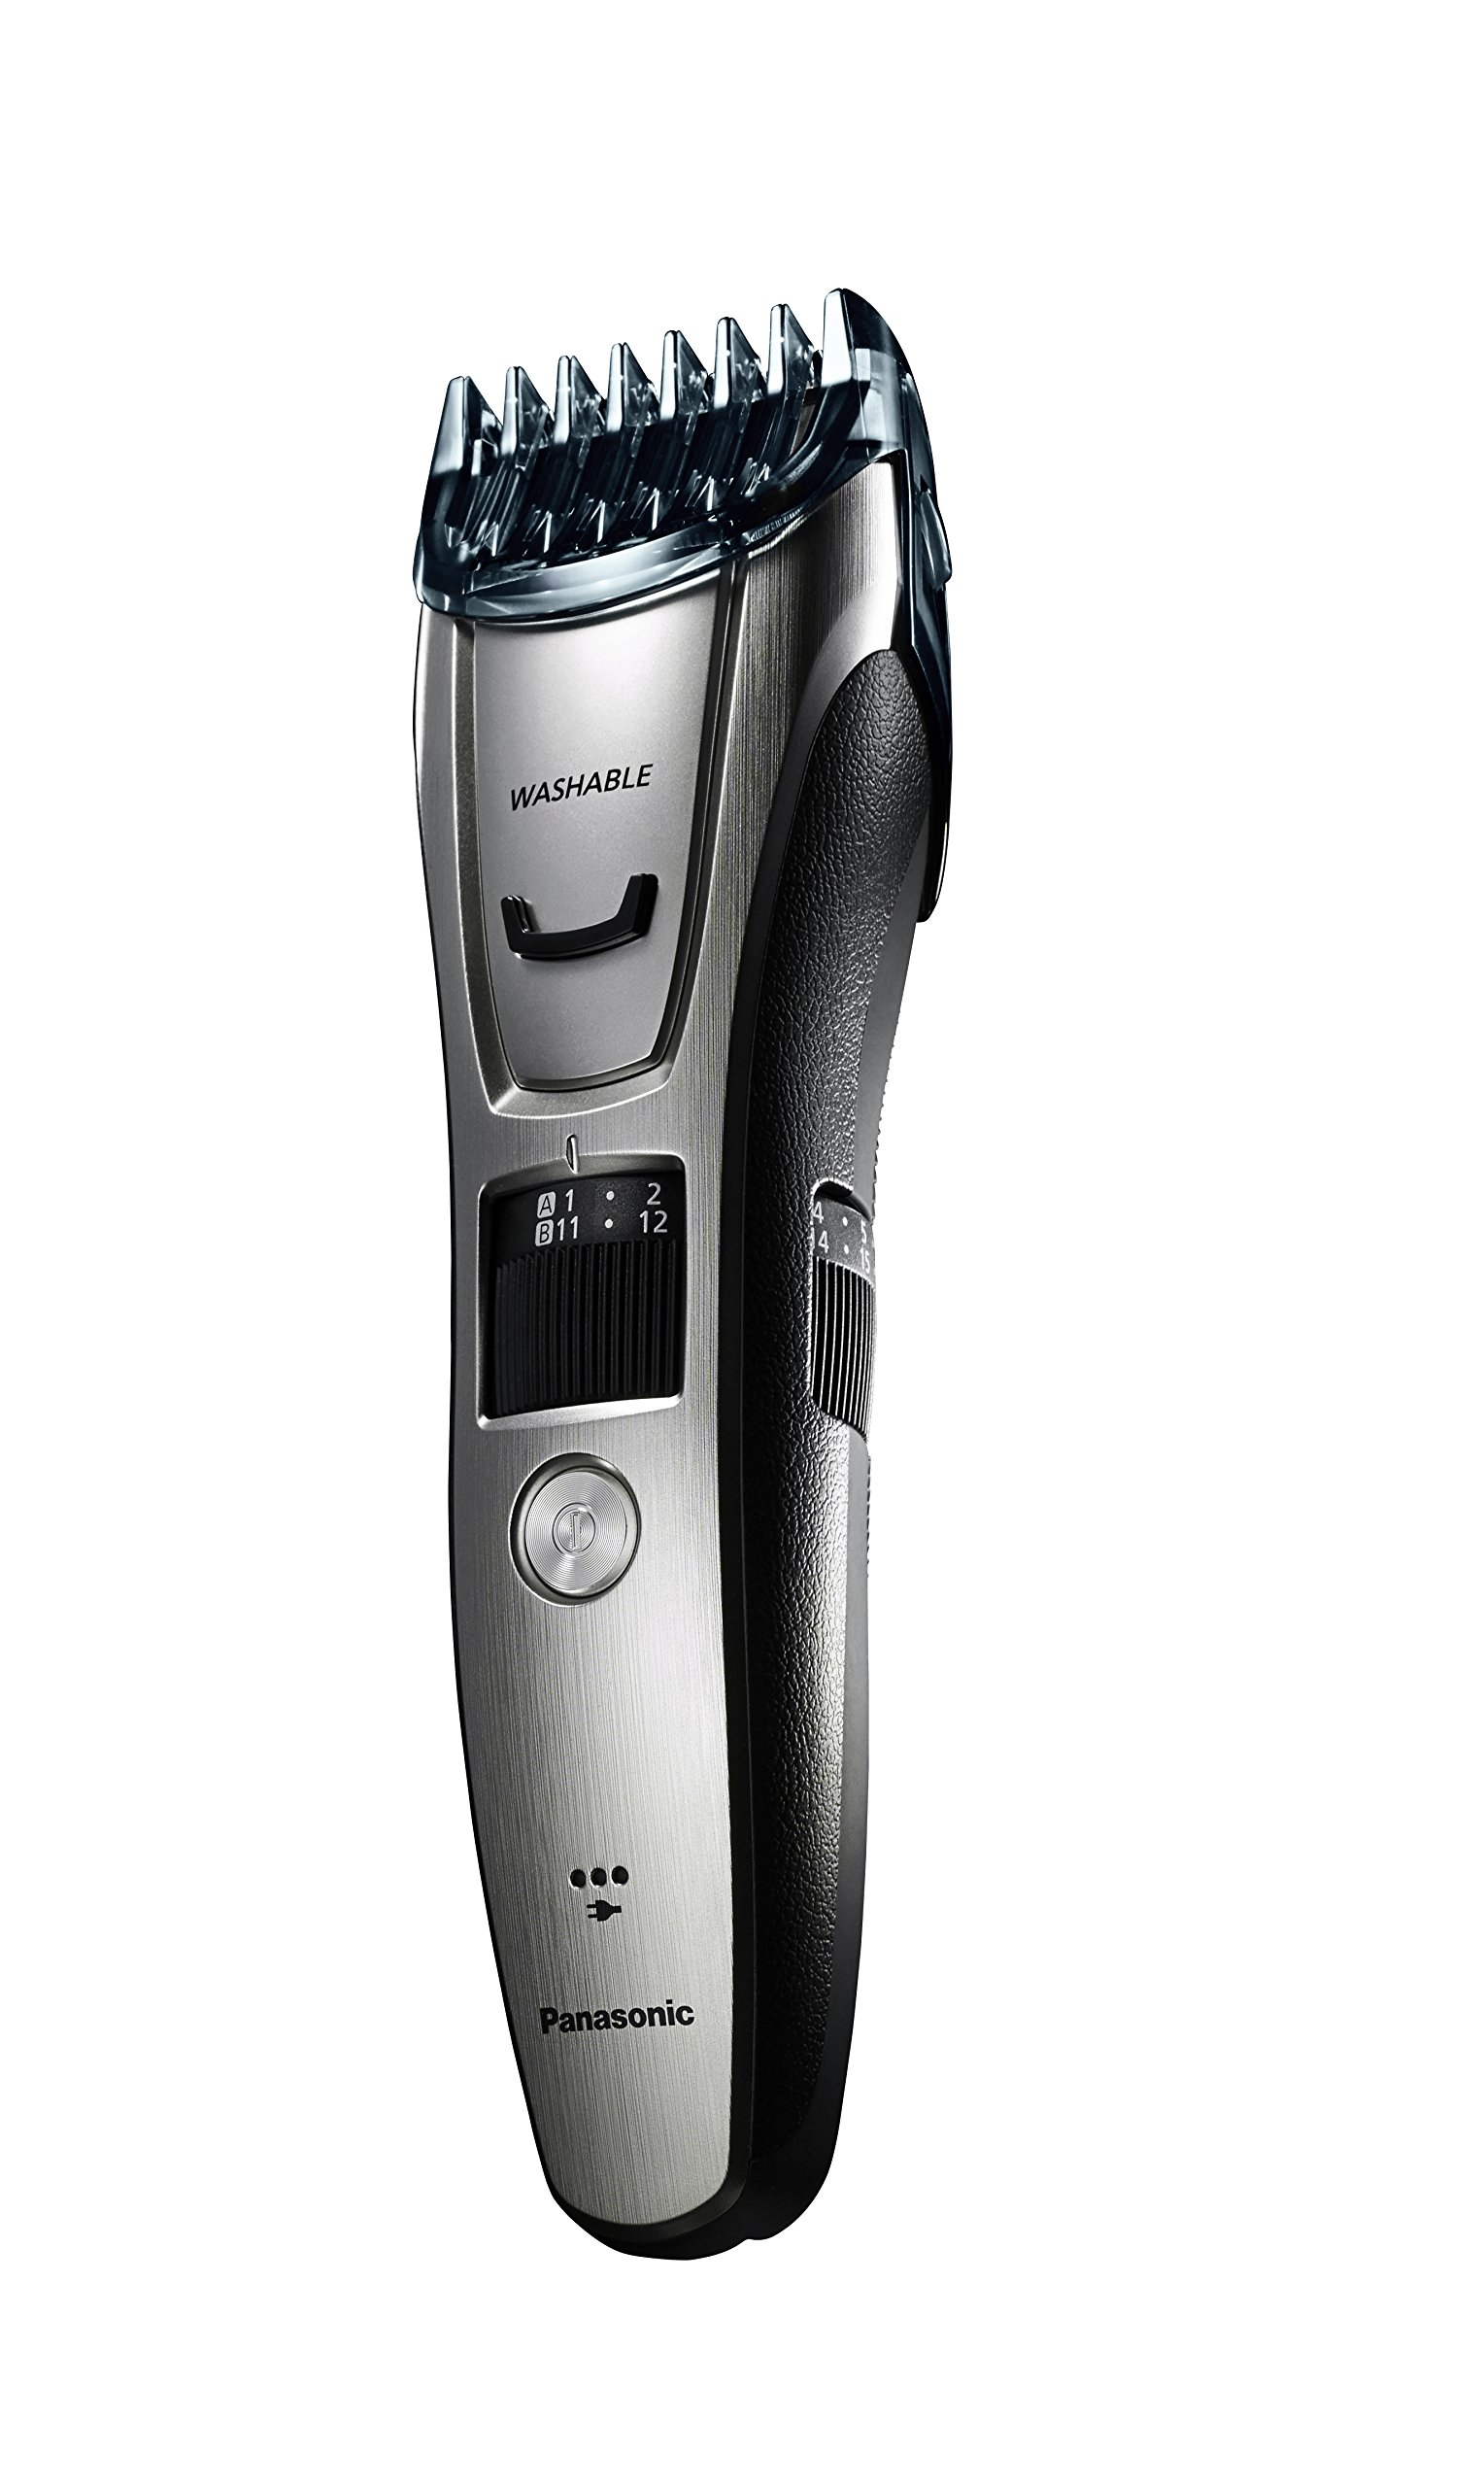 Panasonic ER-GB80-S Body and Beard Trimmer, Hair Clipper, Men's, Cordless/Corded Operation with 3 Comb Attachments and 39 Adjustable Trim Settings, Washable by Panasonic (Image #9)